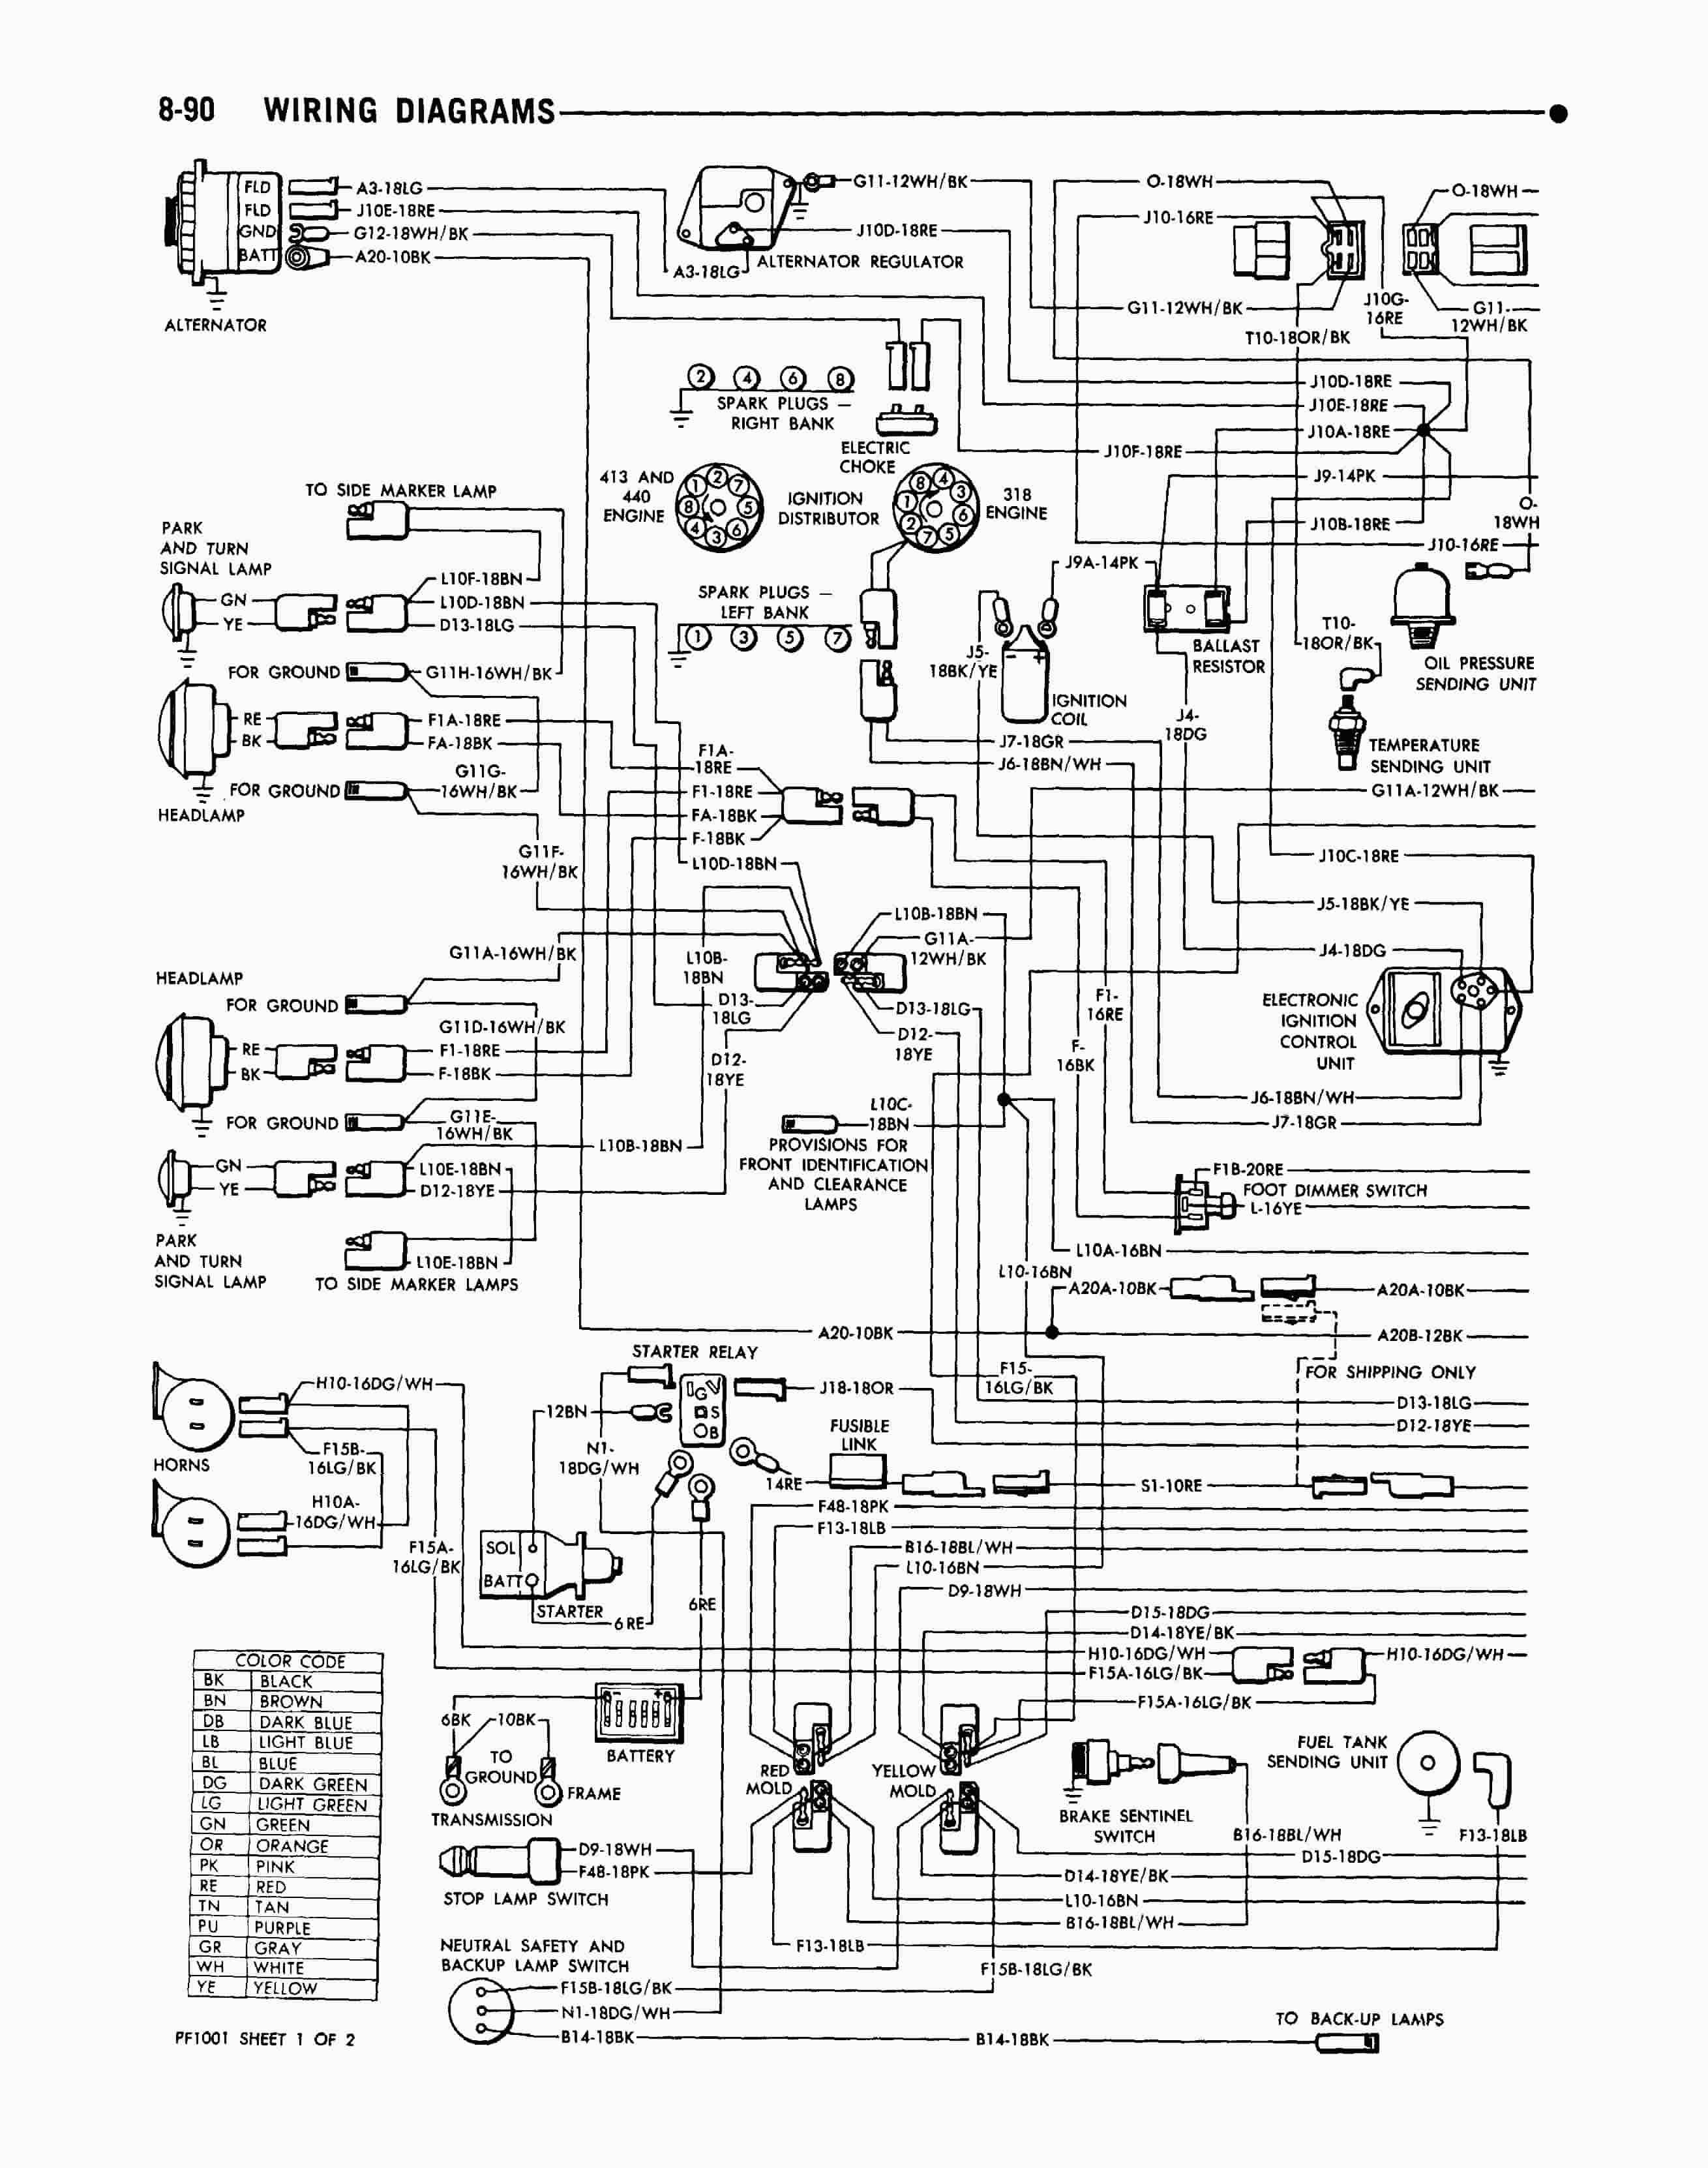 1986 Dodge Ram Ignition Switch Wiring Diagram Wiring Diagram Permanent A Permanent A Emilia Fise It